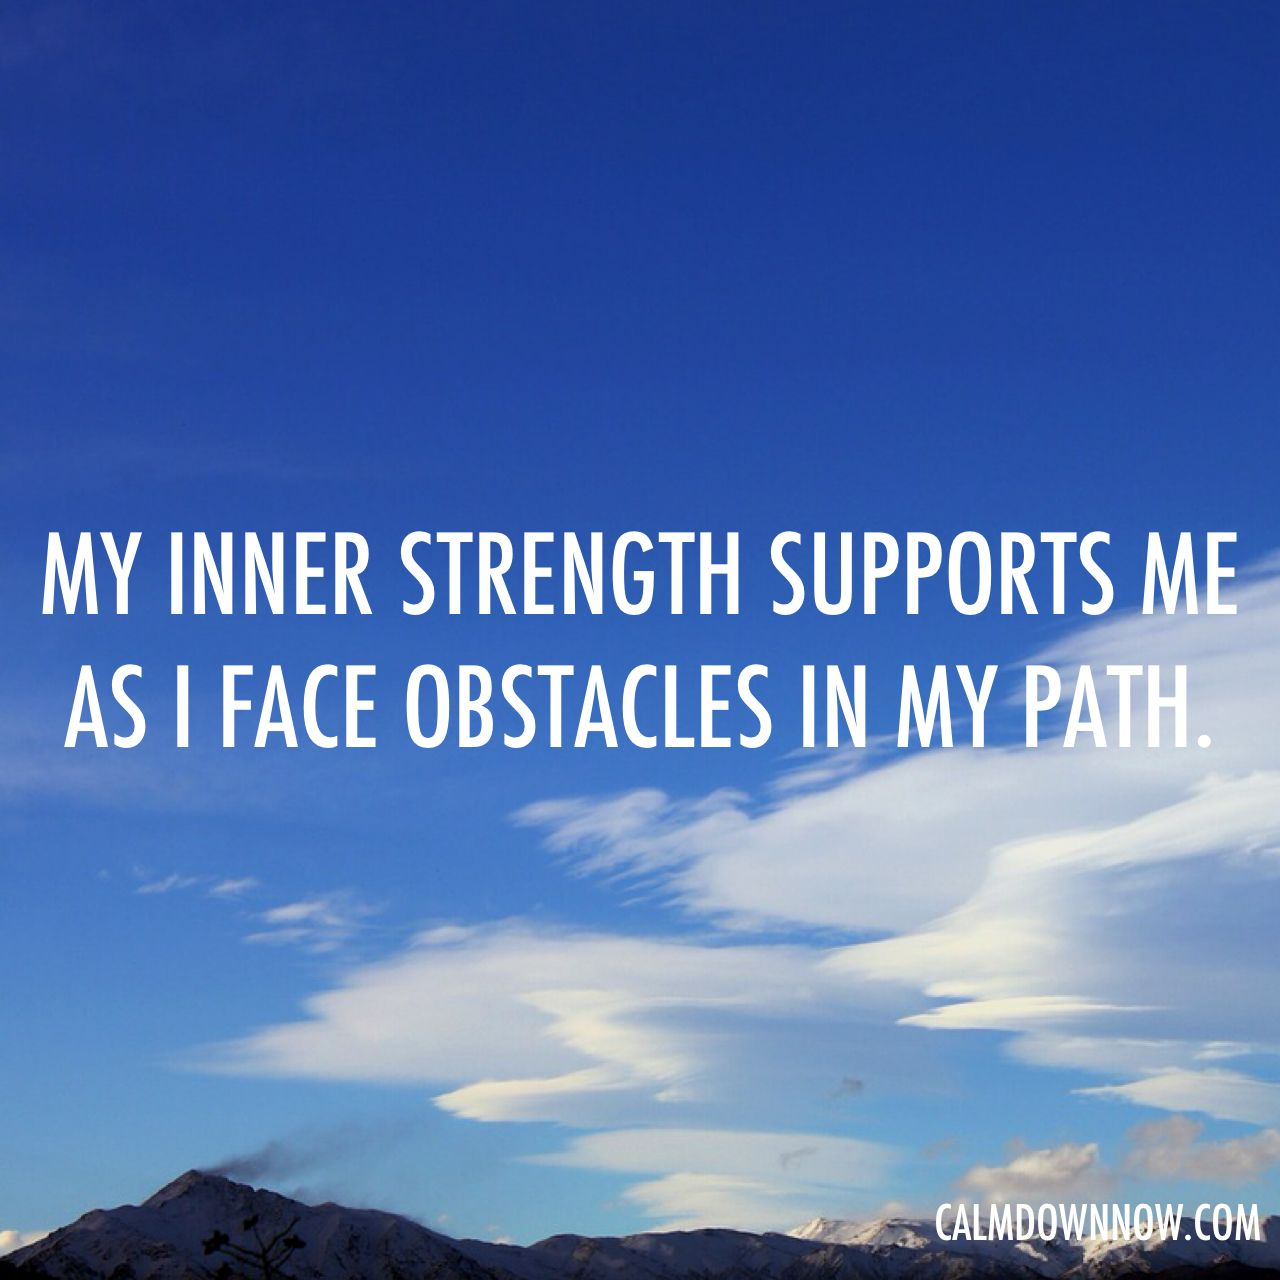 My Inner Strength Supports Me As I Face Obstacles In My